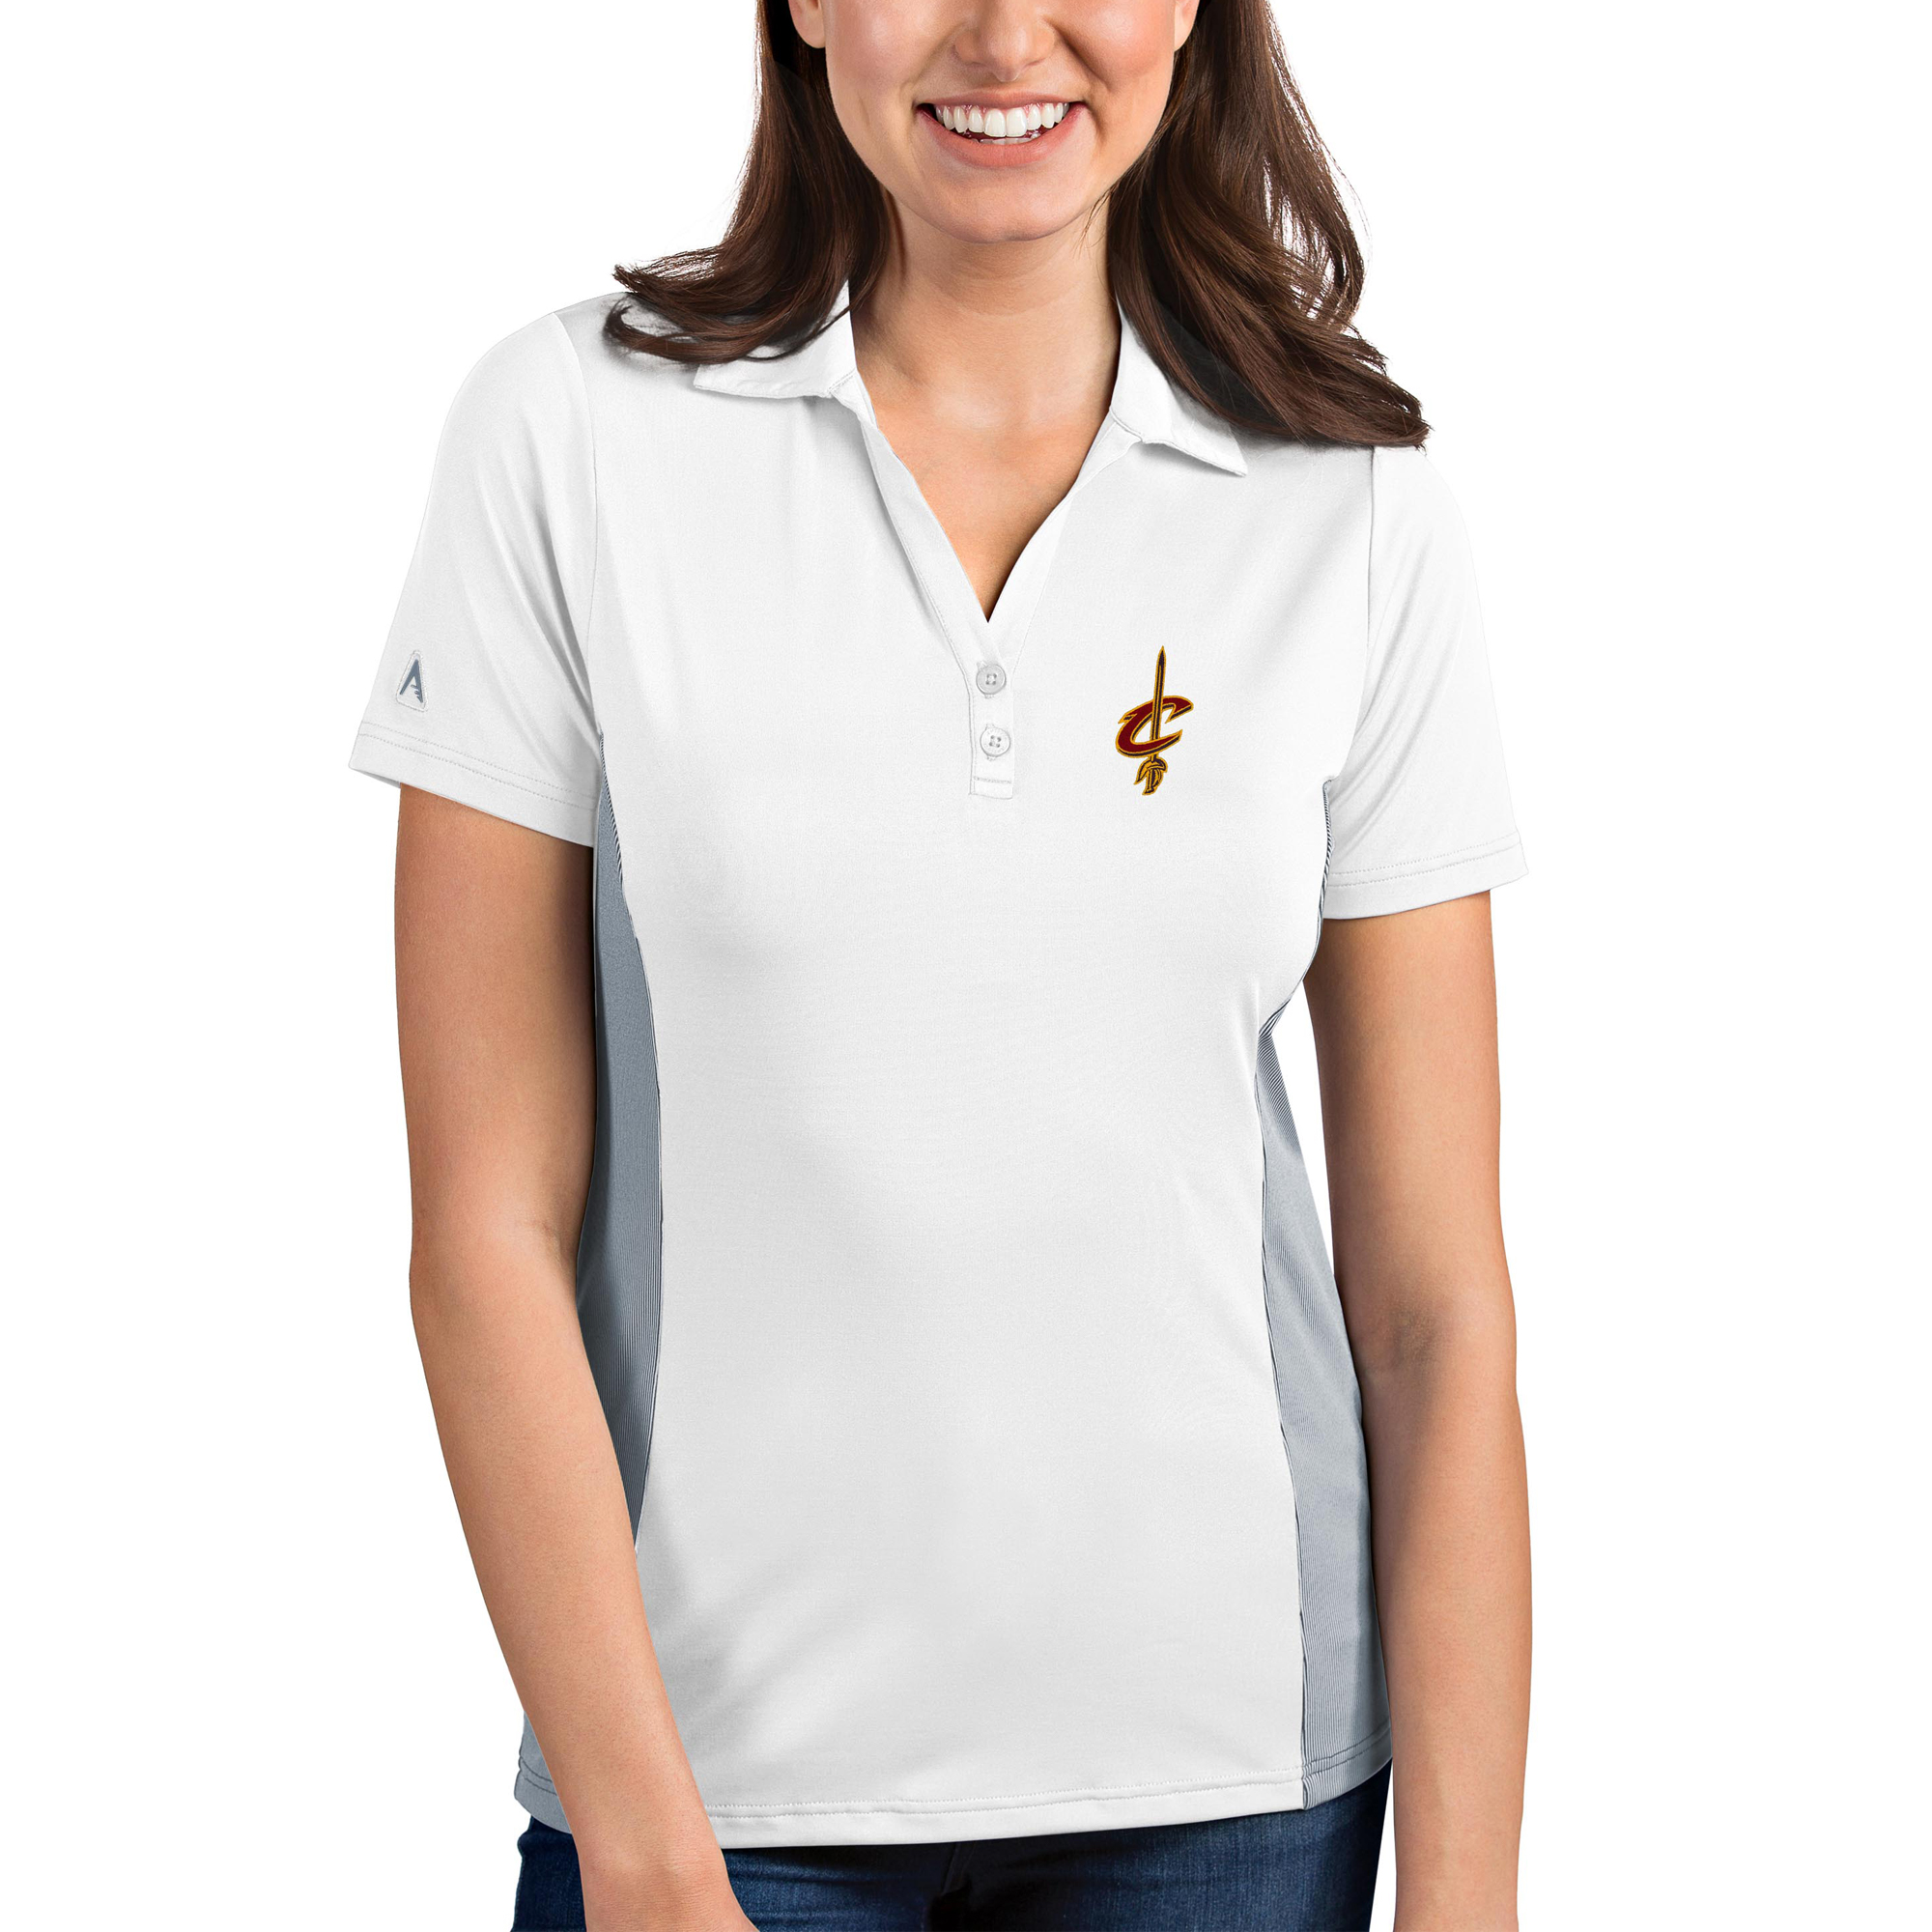 Cleveland Cavaliers Antigua Women's Venture Polo - White/Gray